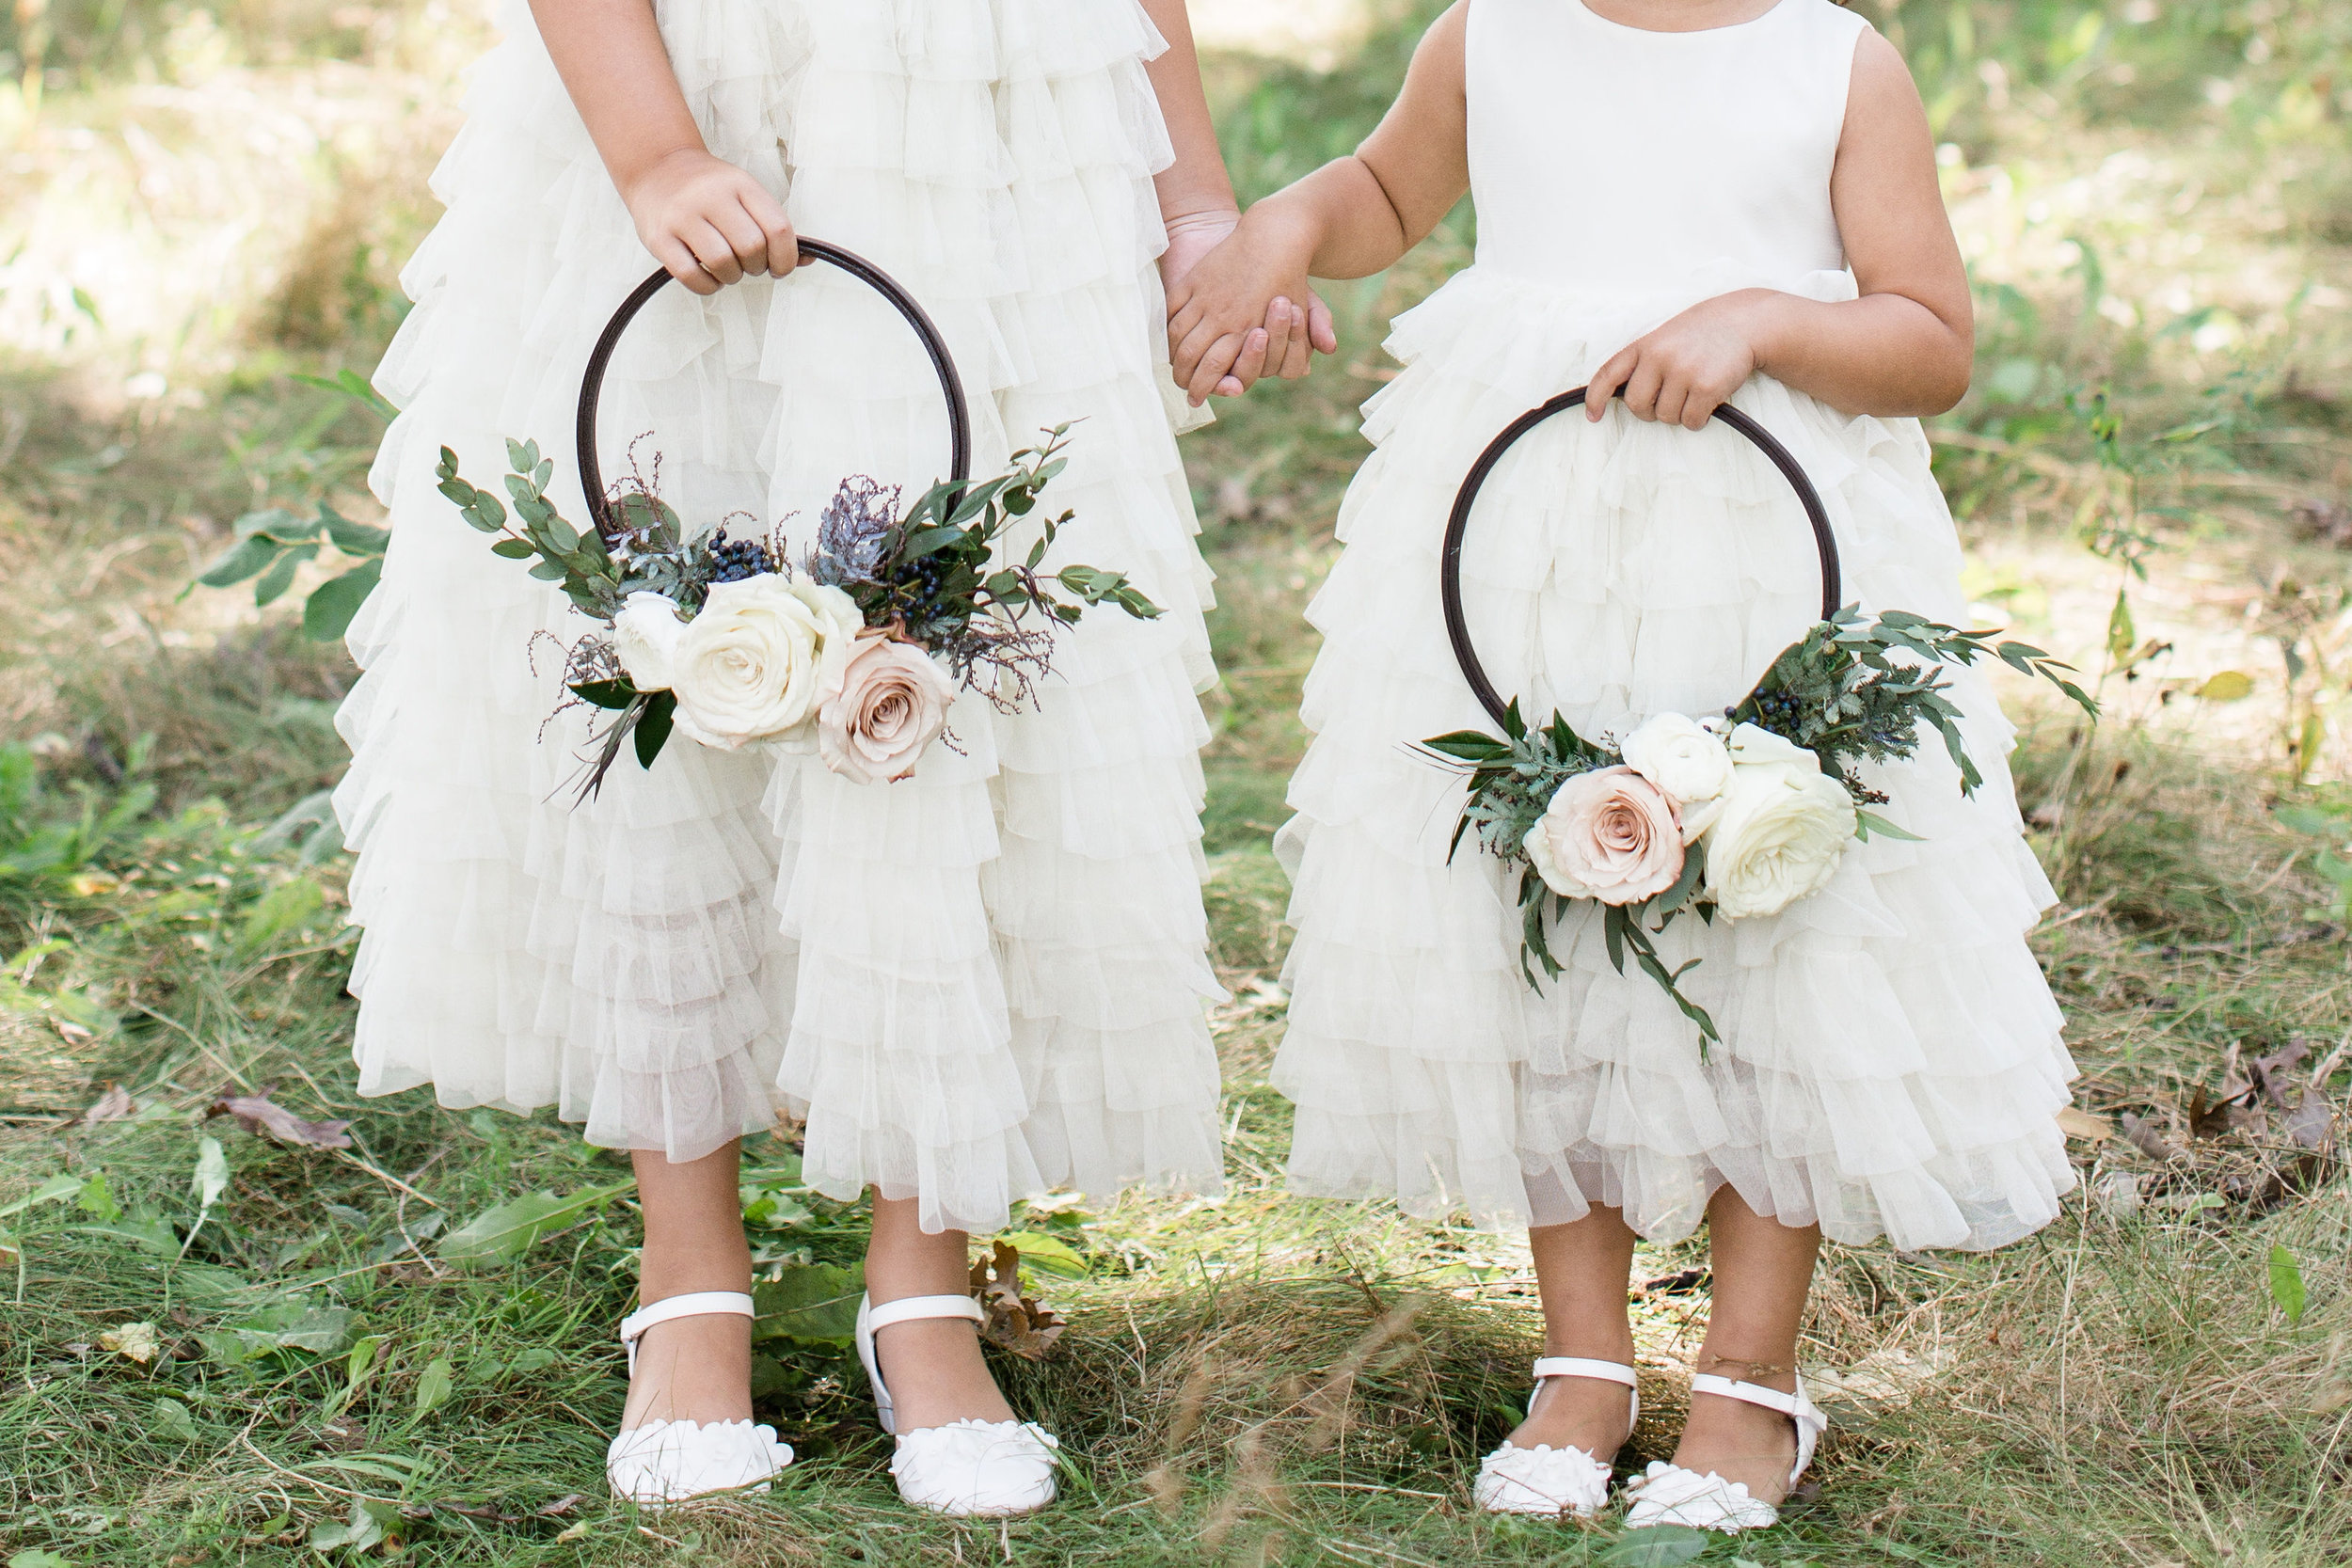 Hoops, as carried by two flower girls - ages 7 (left) and 4 (right) | Image by True Grace Creative